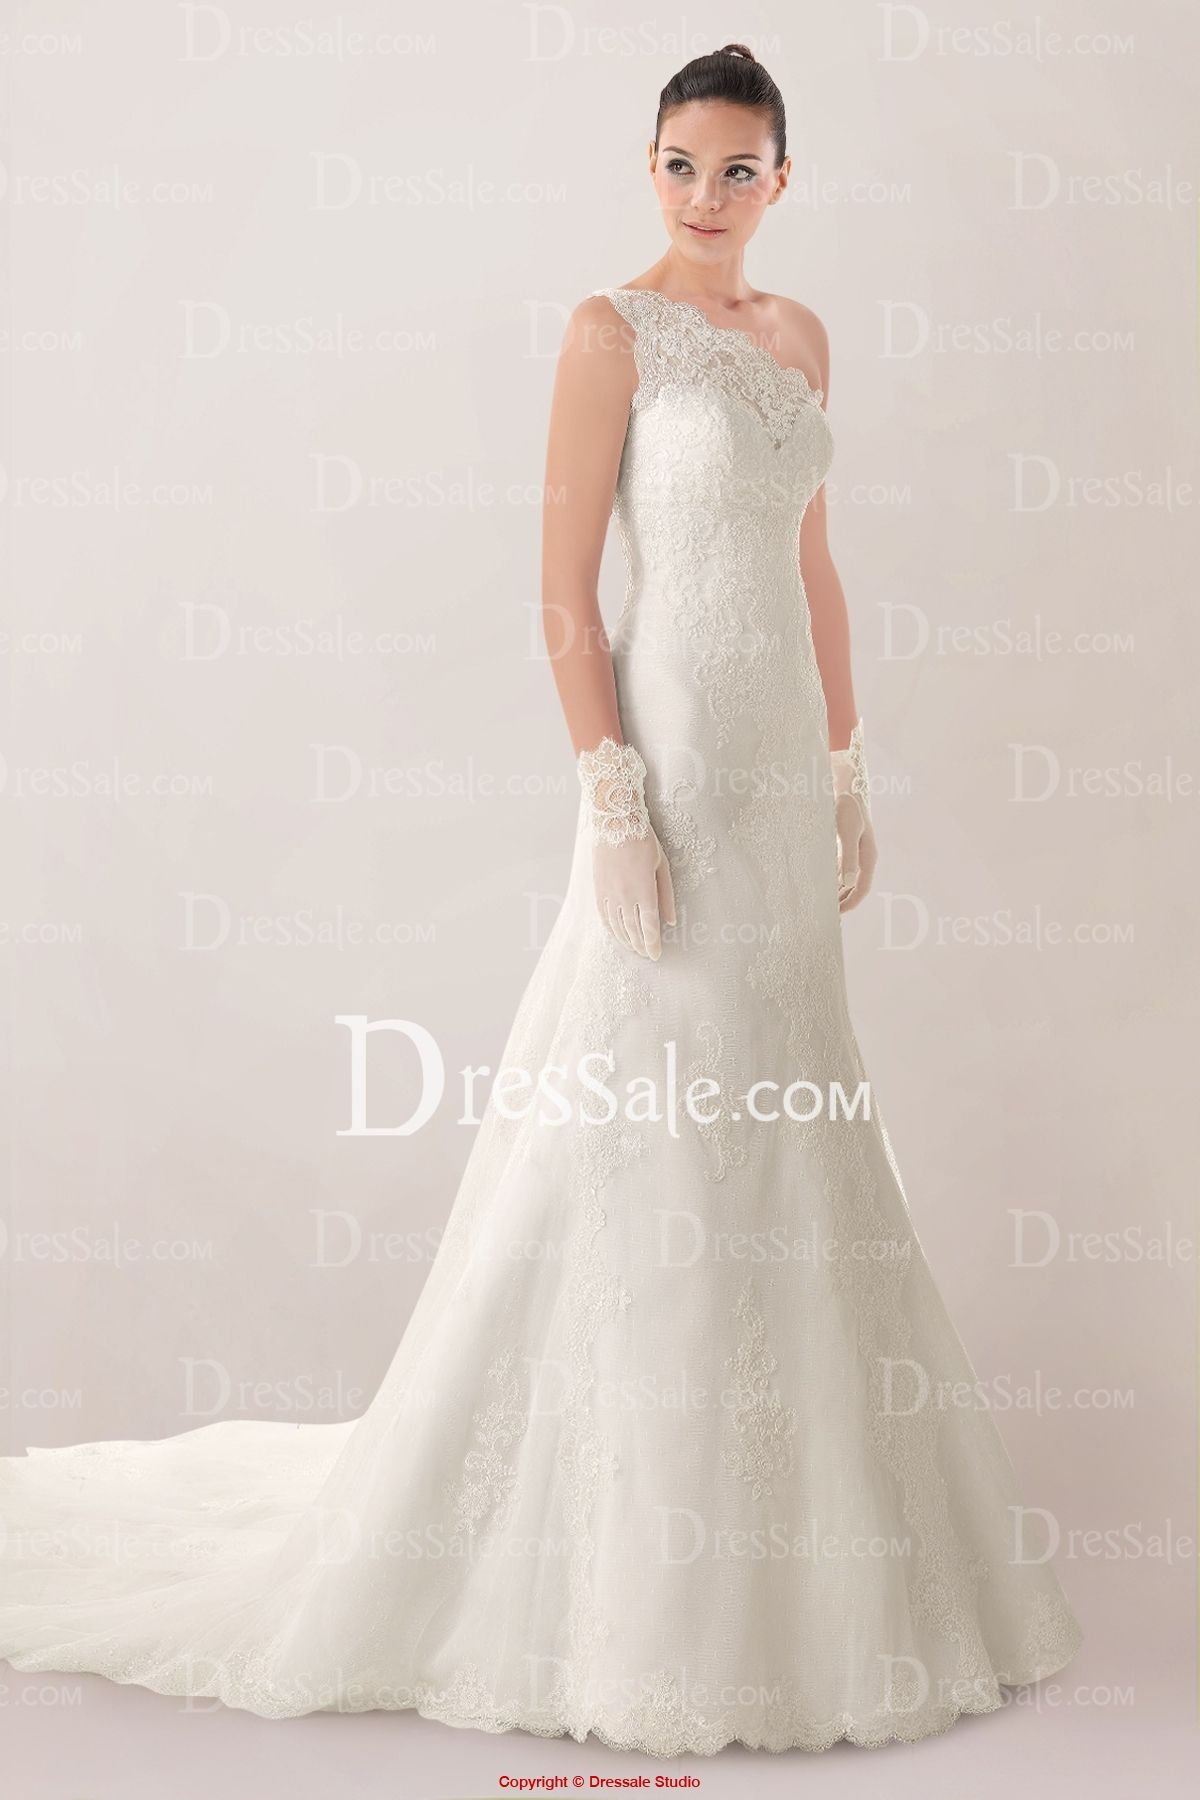 Glamorous oneshoulder aline wedding dress featuring lace overlay